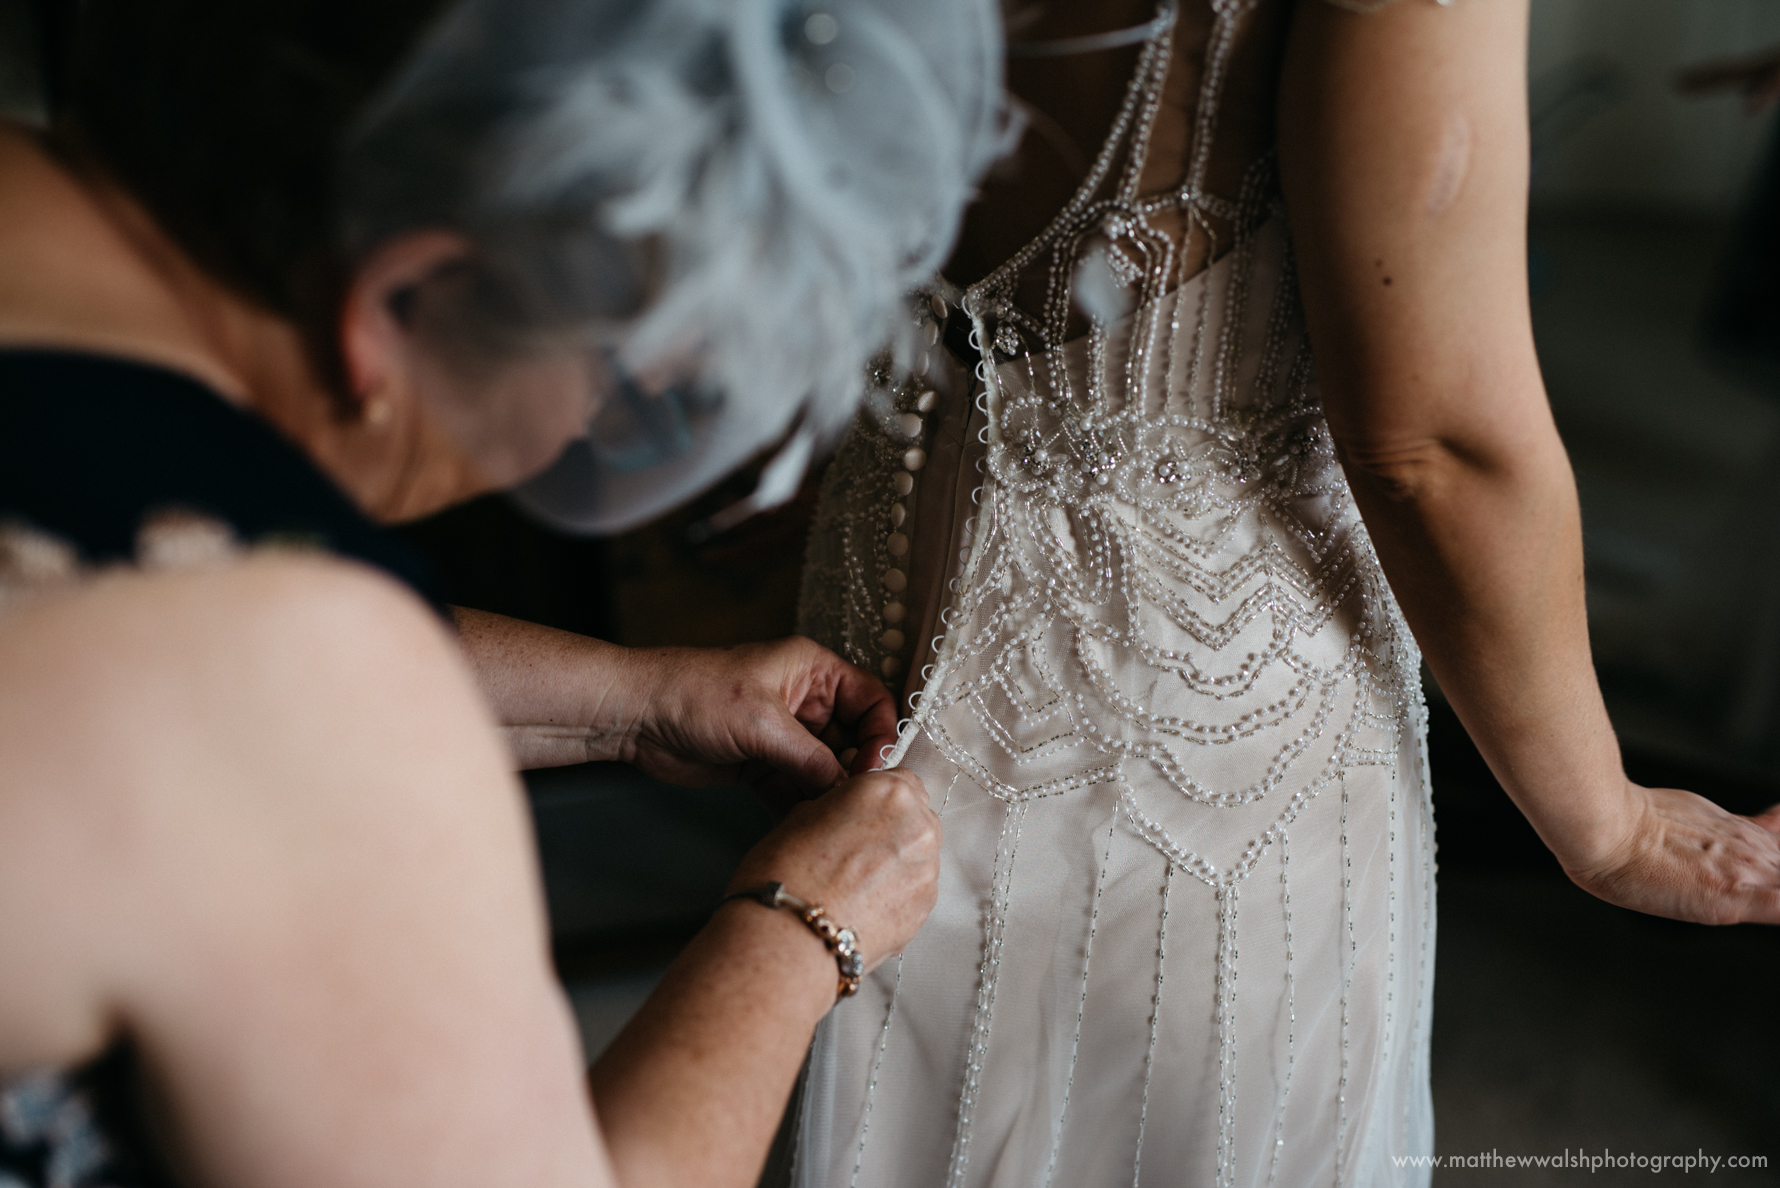 Mother of the bride traditionally fastens the buttons of the brides dress